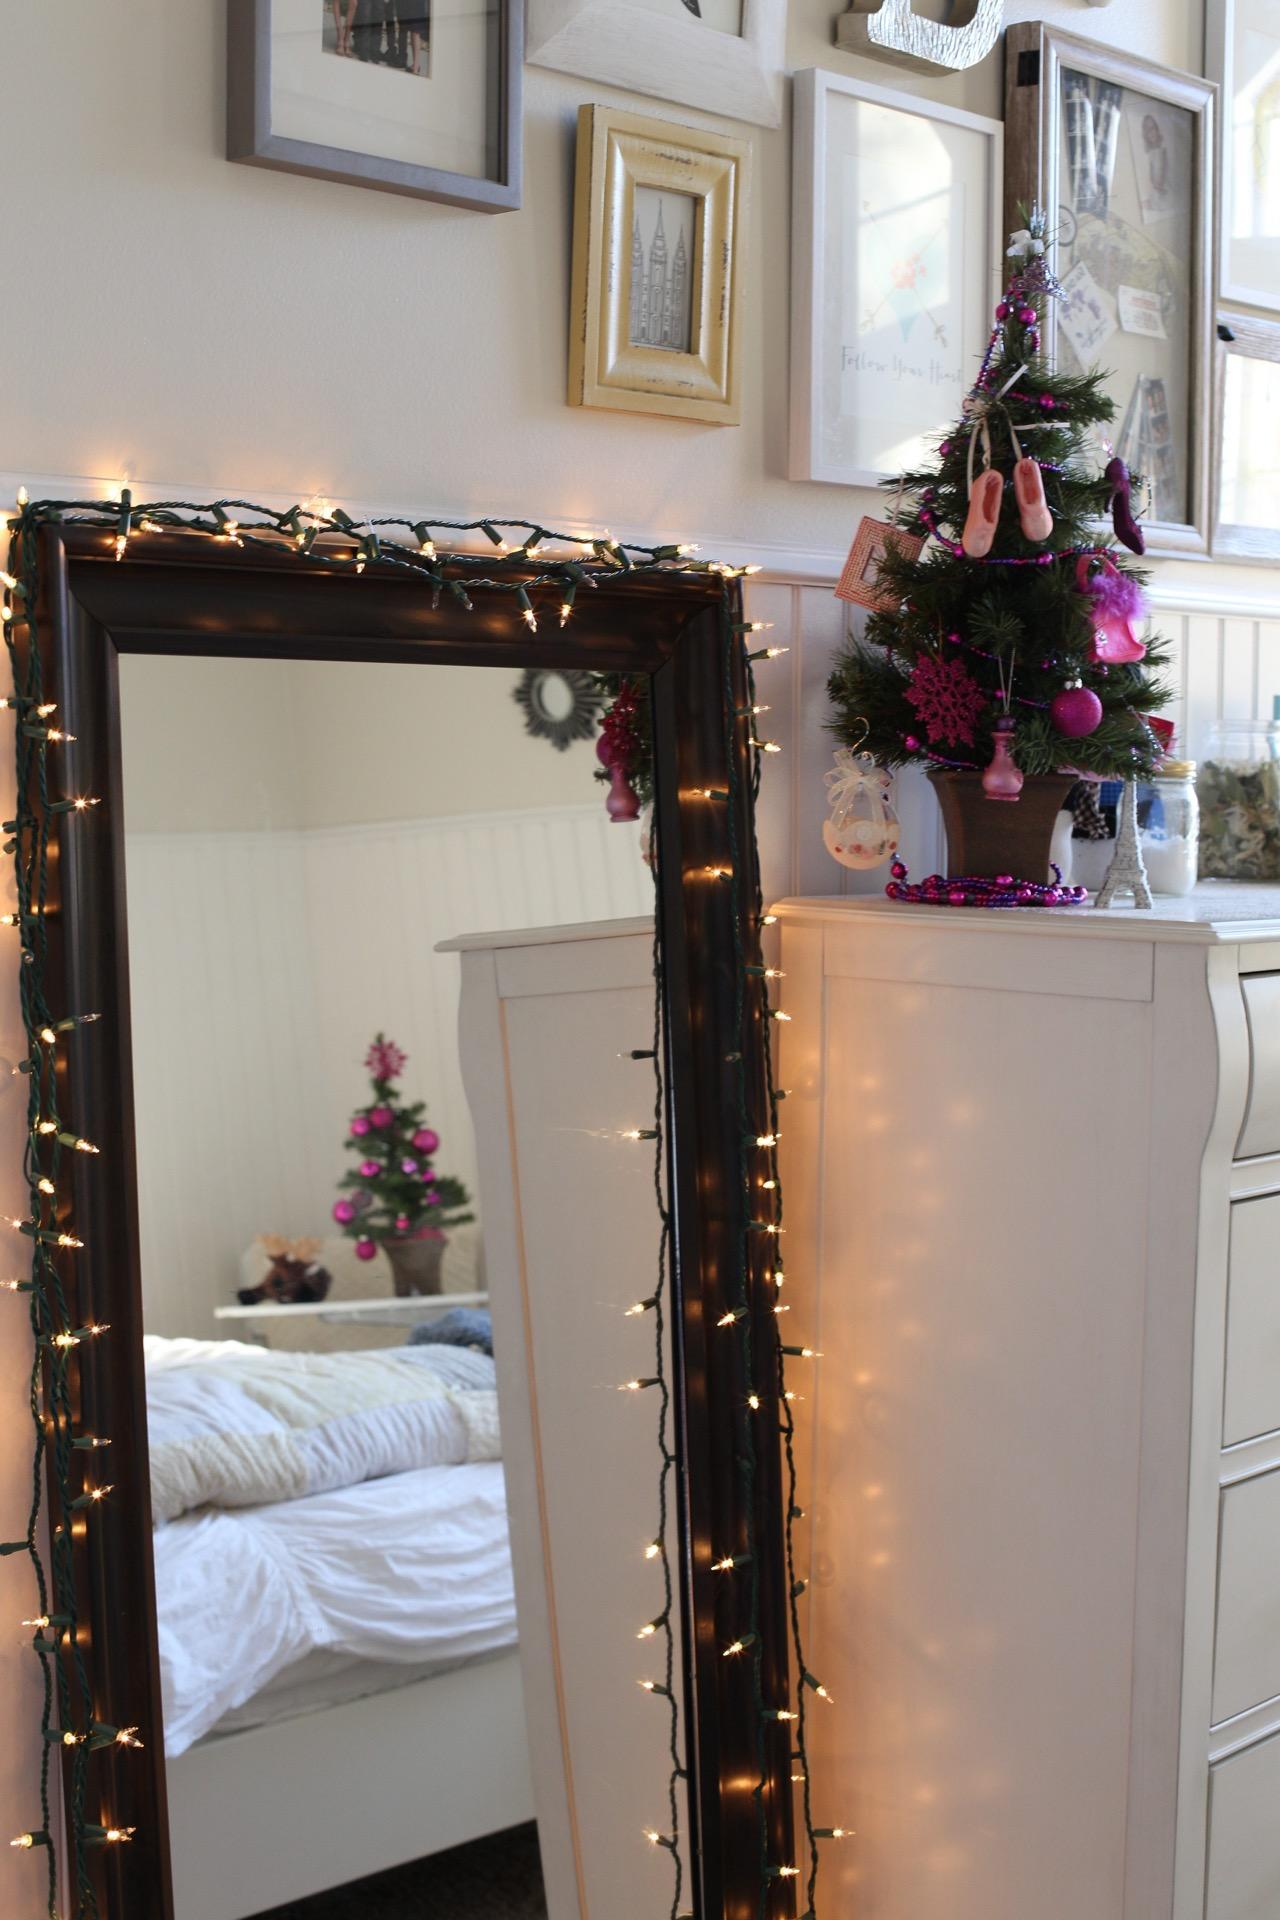 Brynn's mirror reflects many Christmas decorations, along with the mirror itself, November 14, 2016.